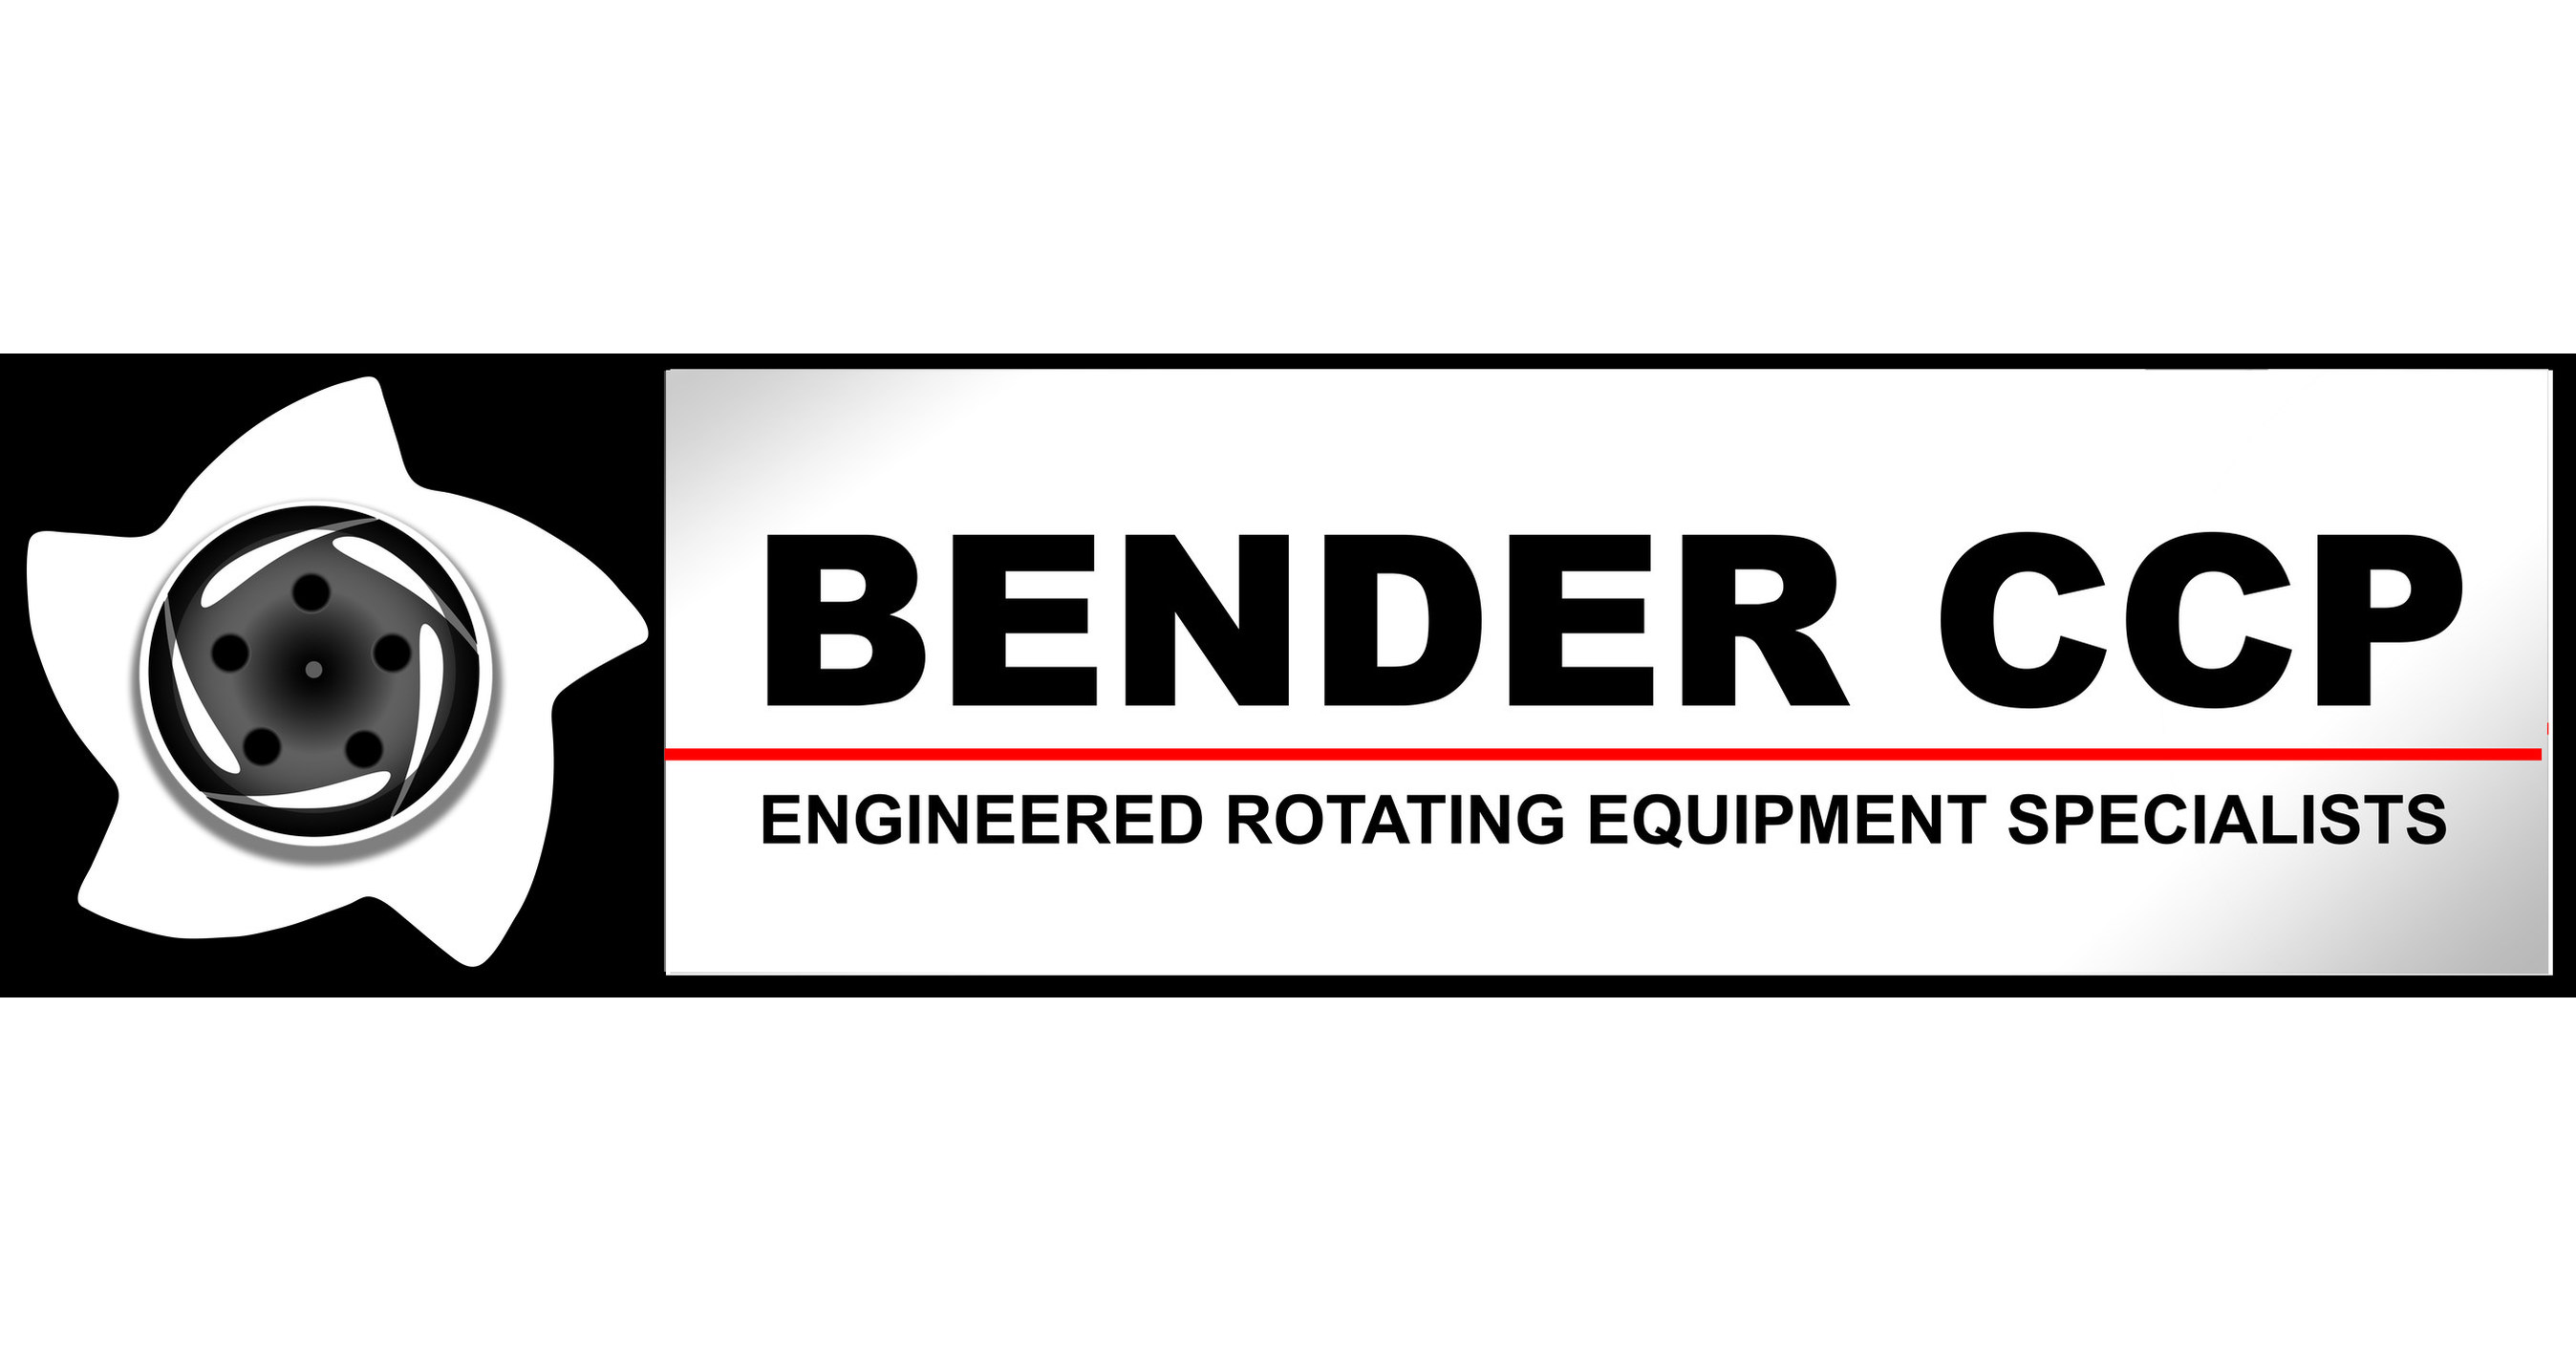 Bender CCP and Unico Mechanical Expand In-Place Field Services and Turbine Overhaul Capabilities with Accurate Machine & Tool Acquisition - PRNewswire